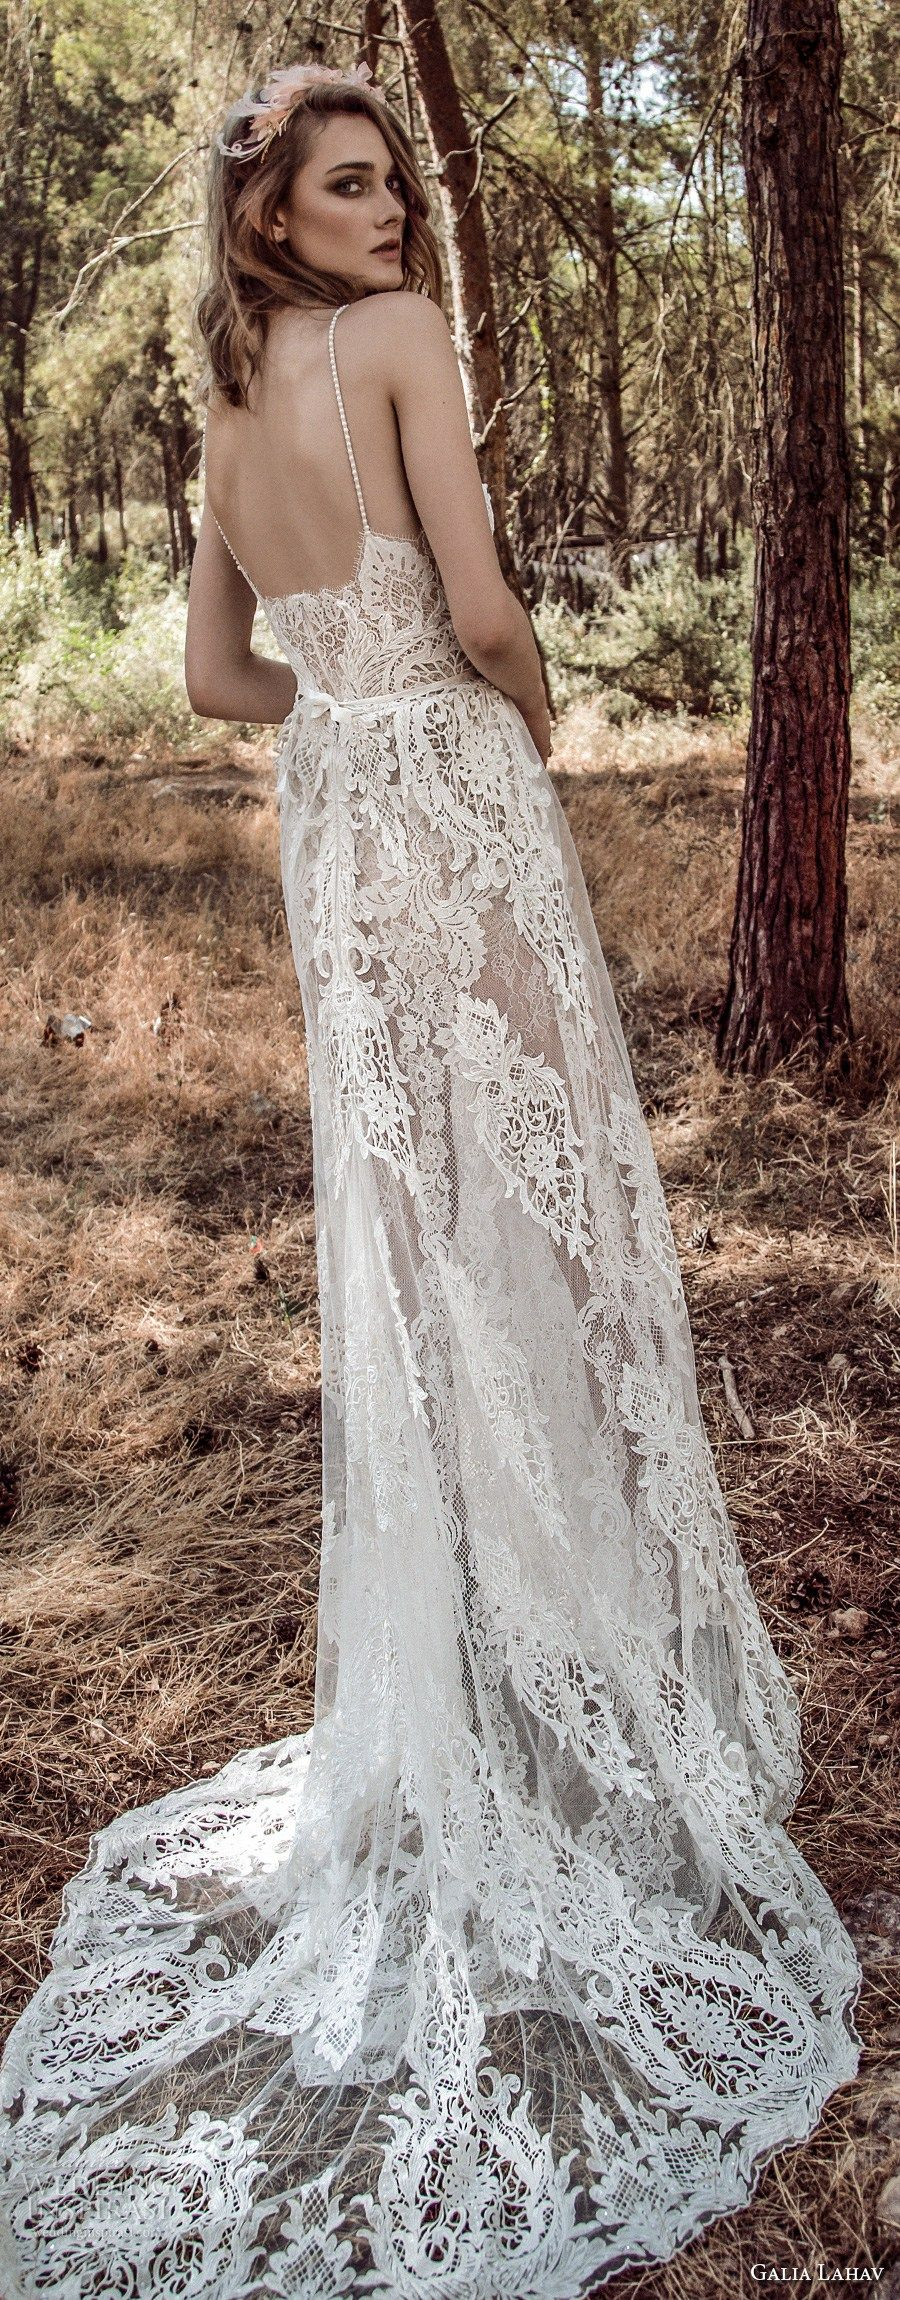 Gala by galia lahav wedding dresses весільні сукні